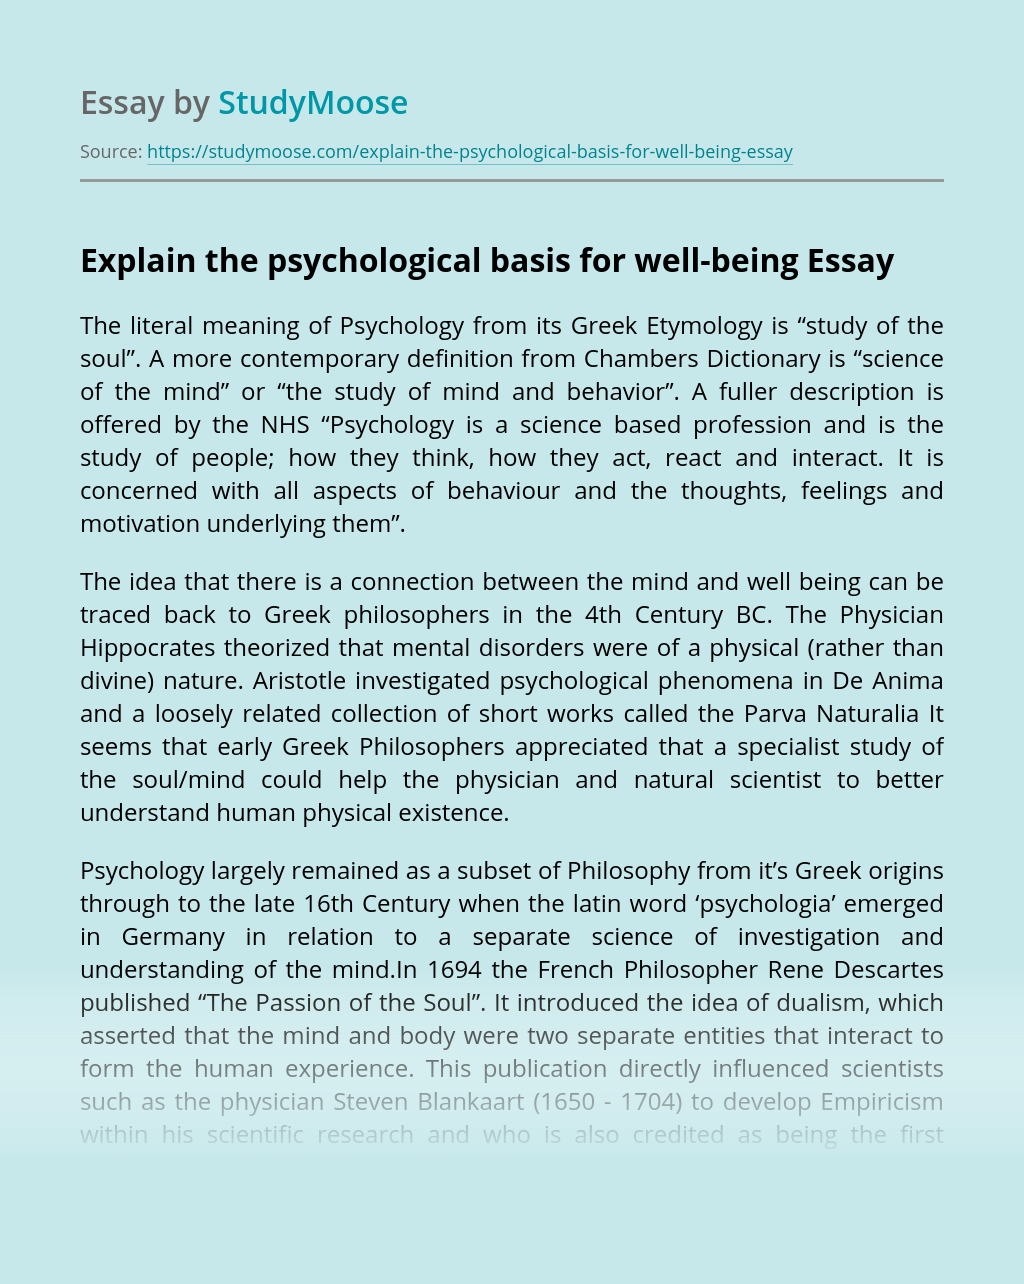 Explain the Psychological Basis for Well-Being